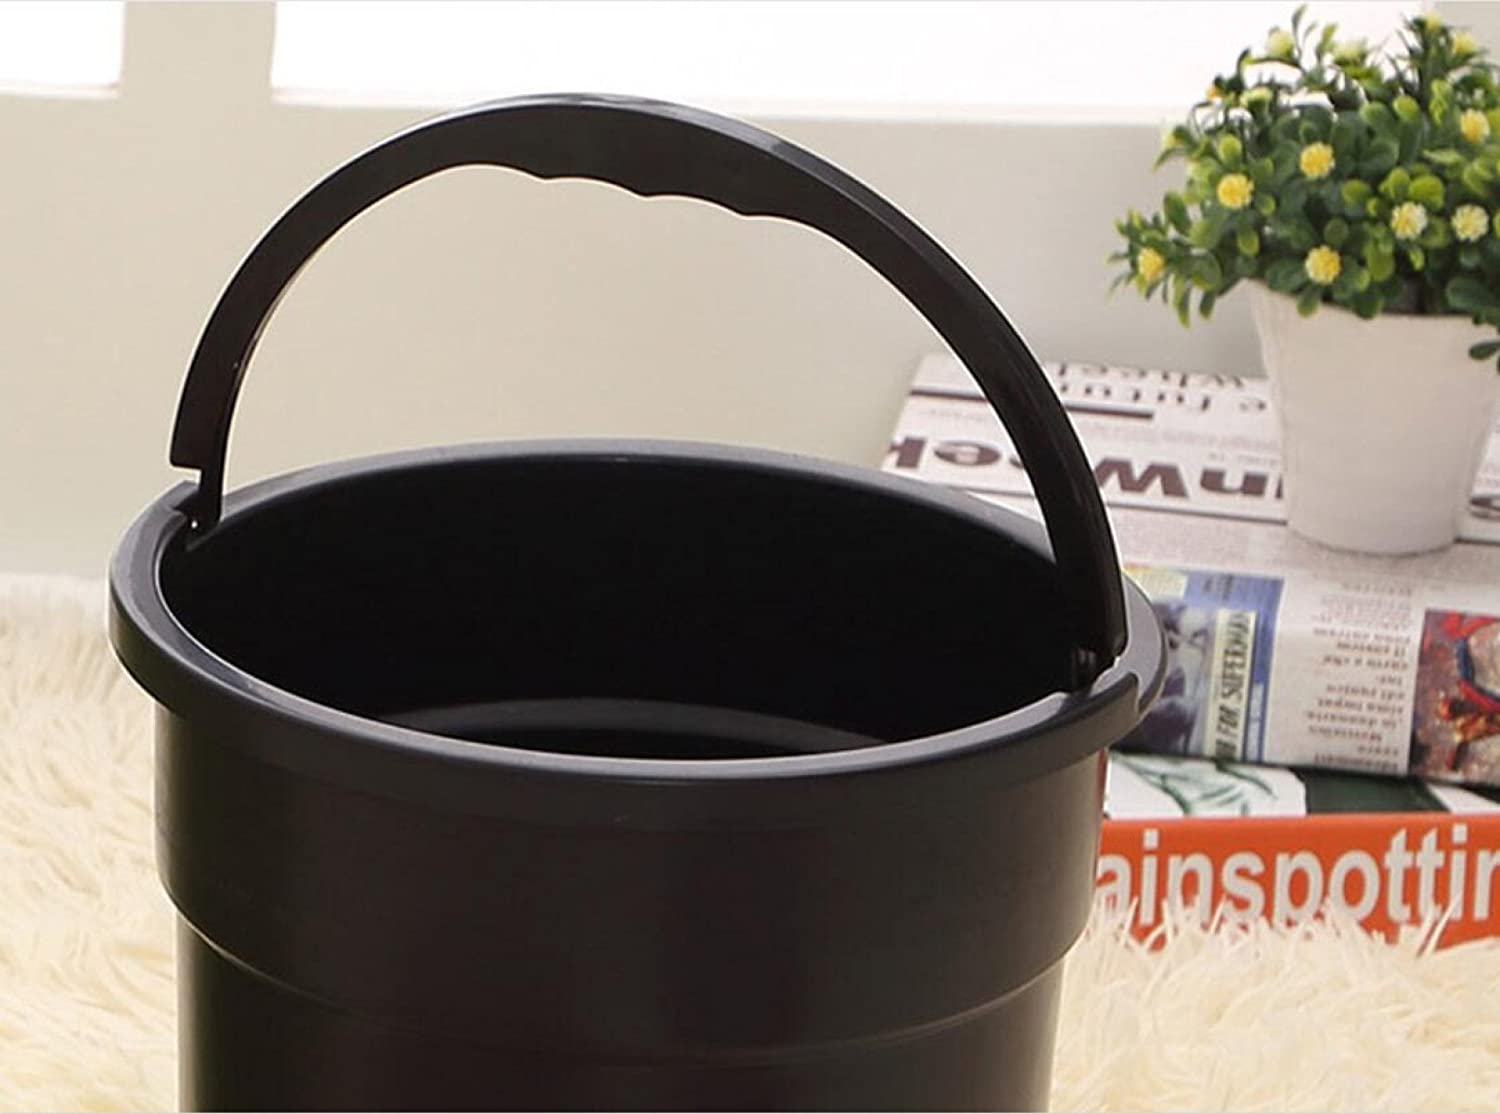 LIAN LIAN LIAN Smart Trash Can Footless Pedals Batería USB Cargador Automático Reel Barrel,12L9.4  17.7in-greenrechargeablemodels 37e1dc